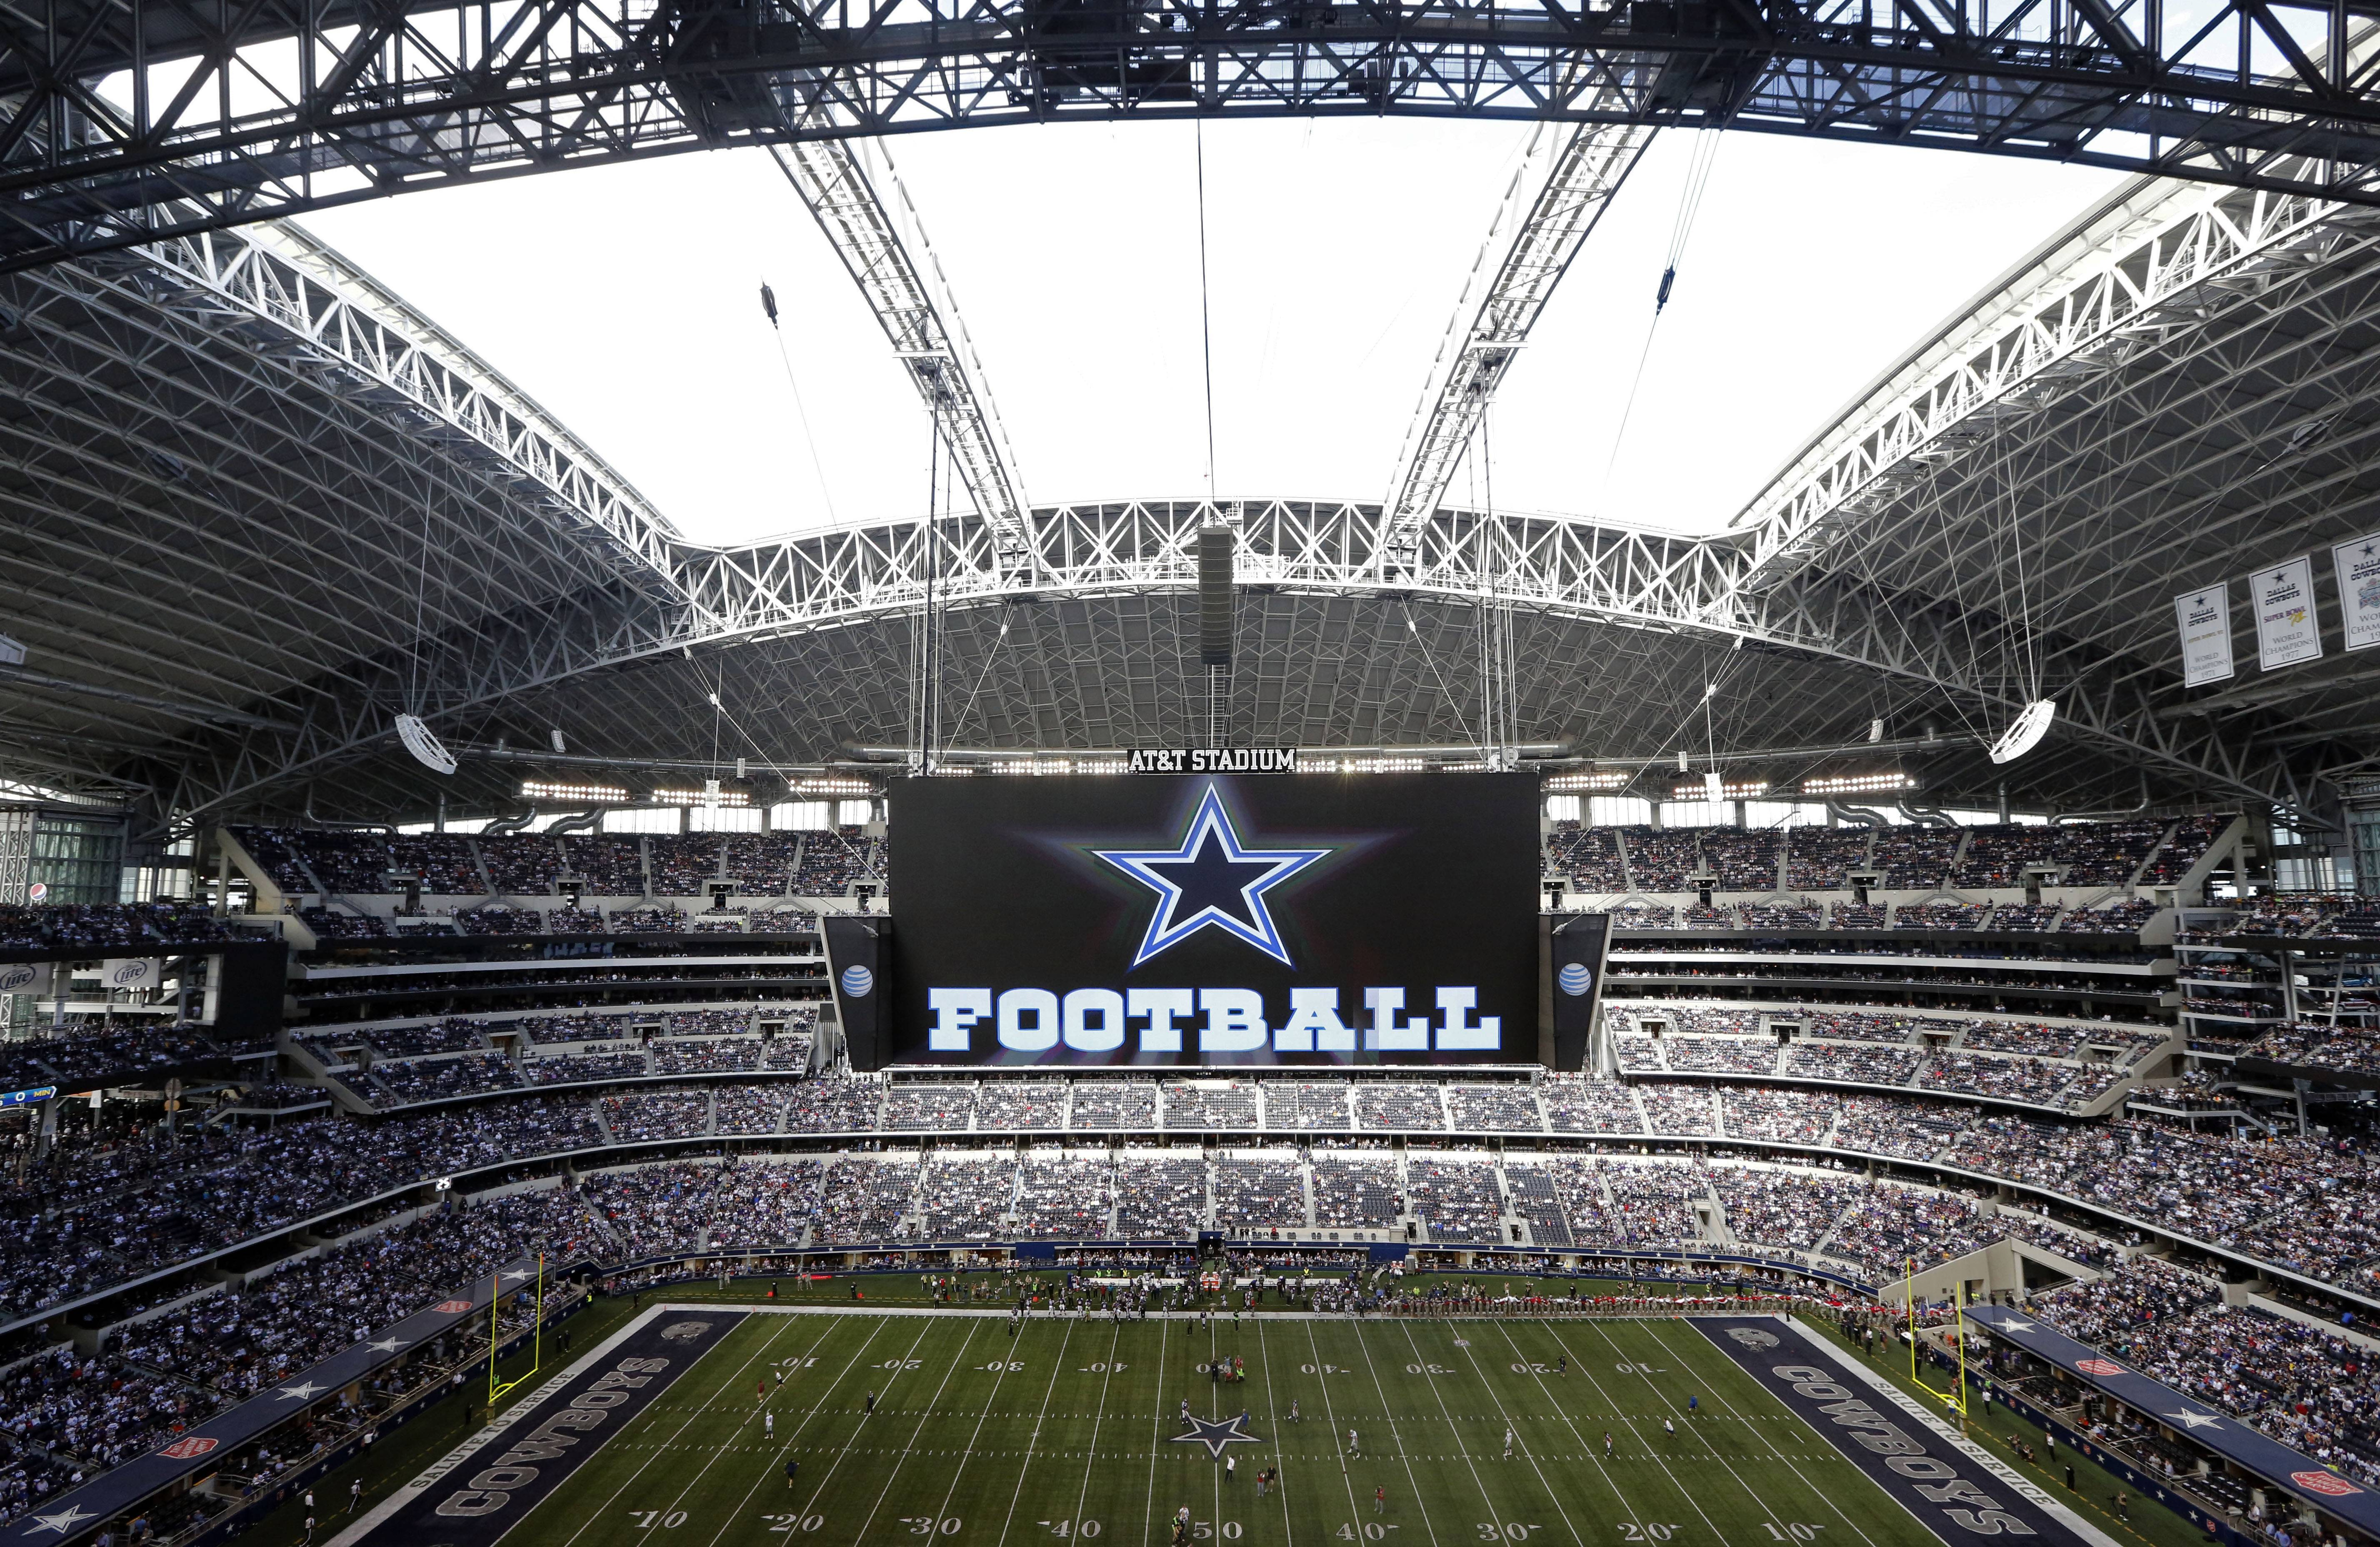 Forbes says the Dallas Cowboys are the first U.S. sports franchise to top $3 billion in value. For the eighth straight year, the Cowboys are worth the most of all 32 NFL franchises, valued at $3.2 billion.